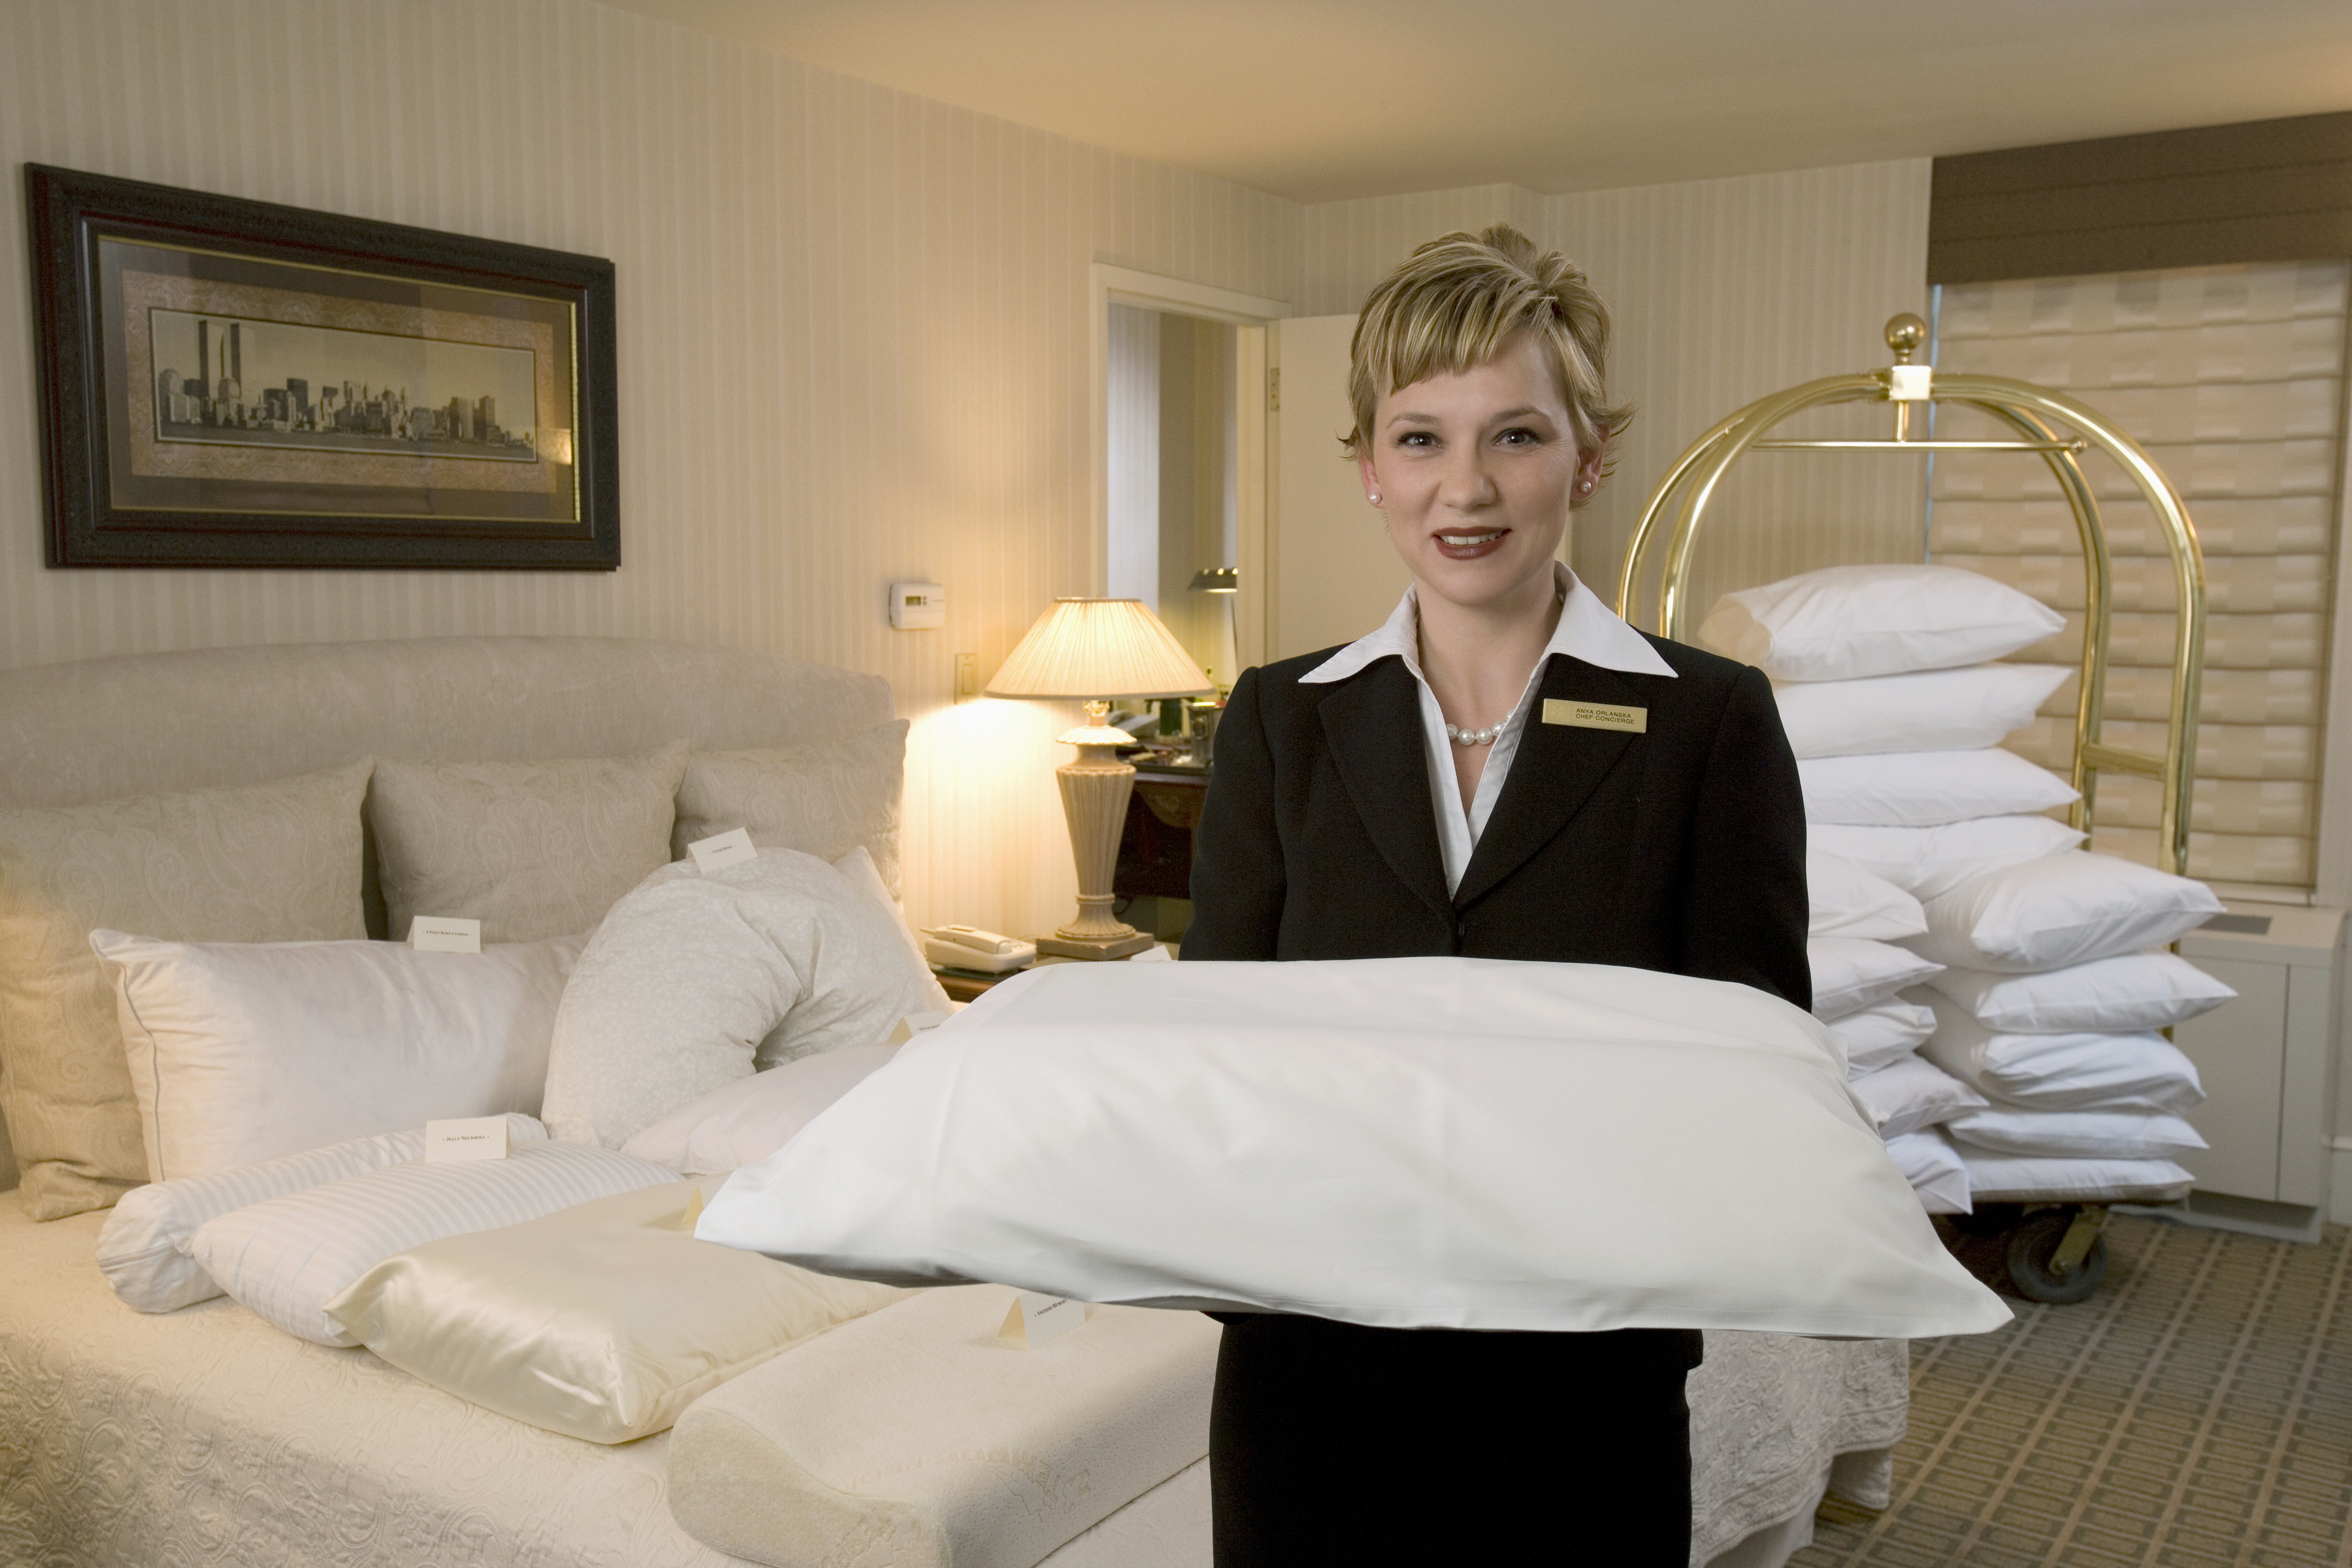 Pillow concierge anya orlanska at the benjamin hotel new york michael nassar - Uniforme femme de chambre hotel ...